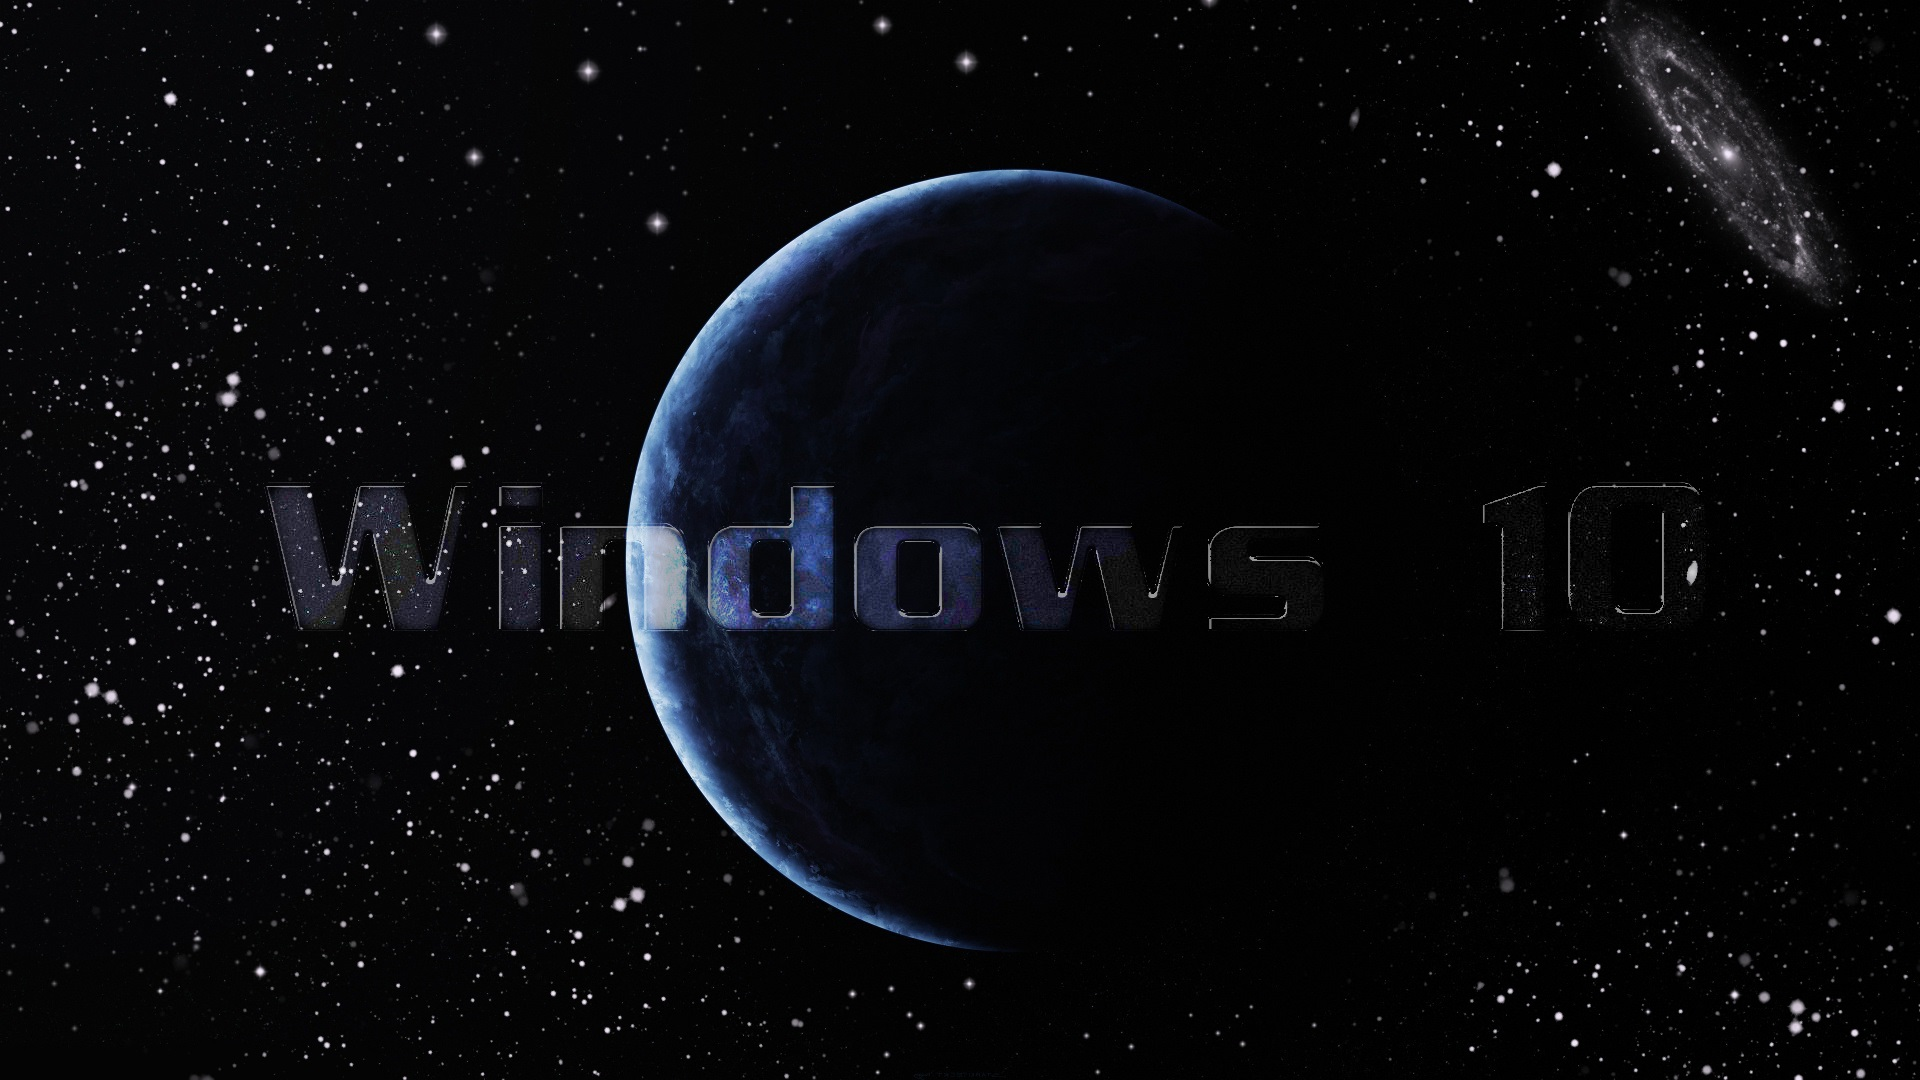 Windows 10 On Galaxy Wallpaper HD 9511 Wallpaper High Resolution 1920x1080